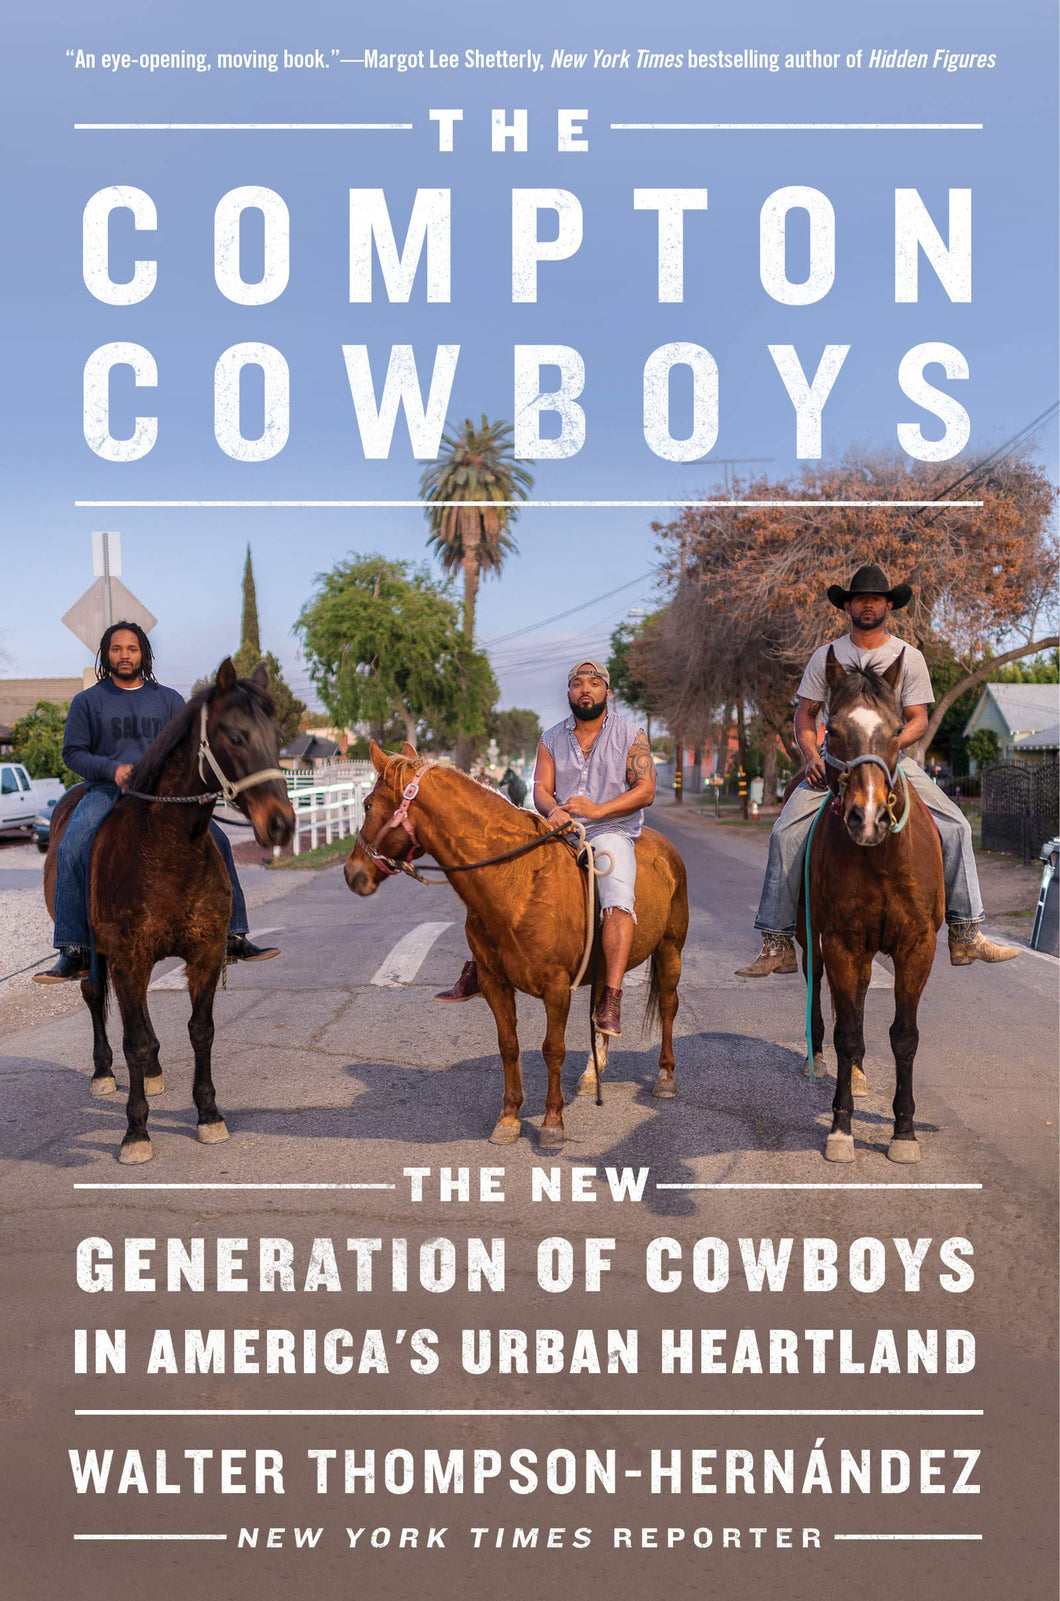 The Compton Cowboys: The New Generation of Cowboys in America's Urban Heartland  by Walter Thompson-Hernandez